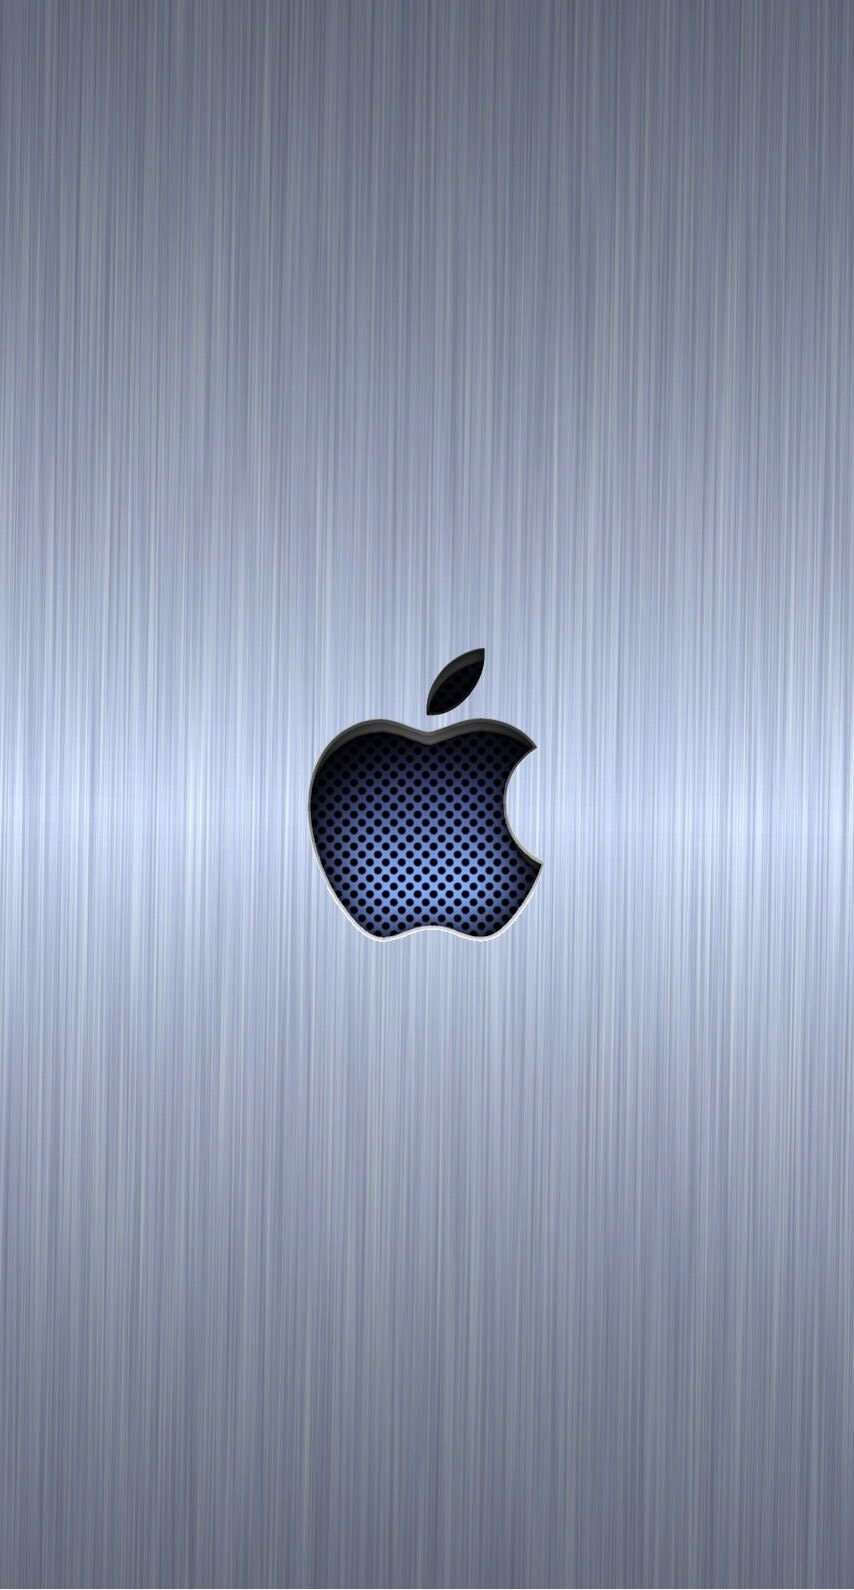 Silver Apple Cool Wallpaper Sc Iphone6s